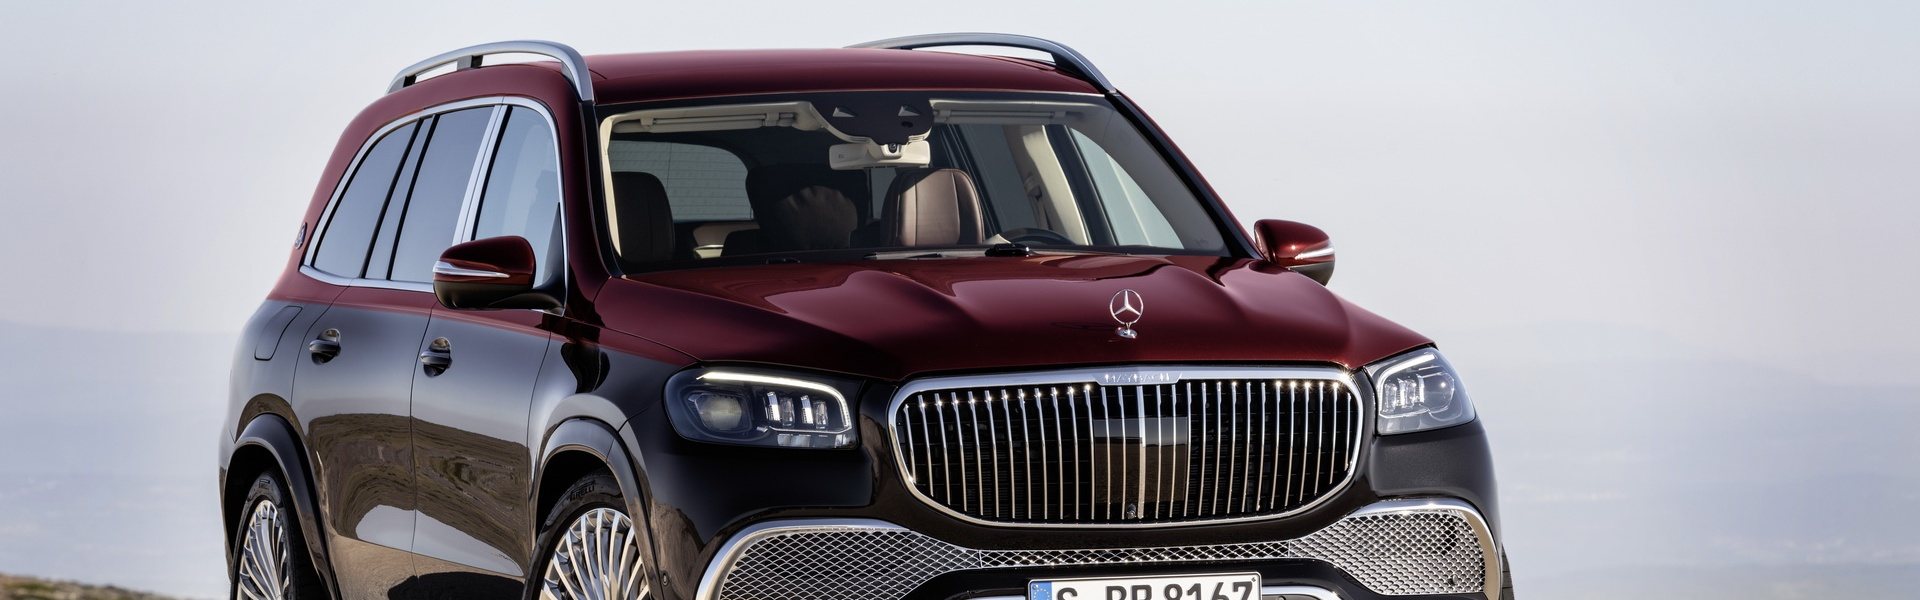 2020-mercedes-maybach-gls.jpg